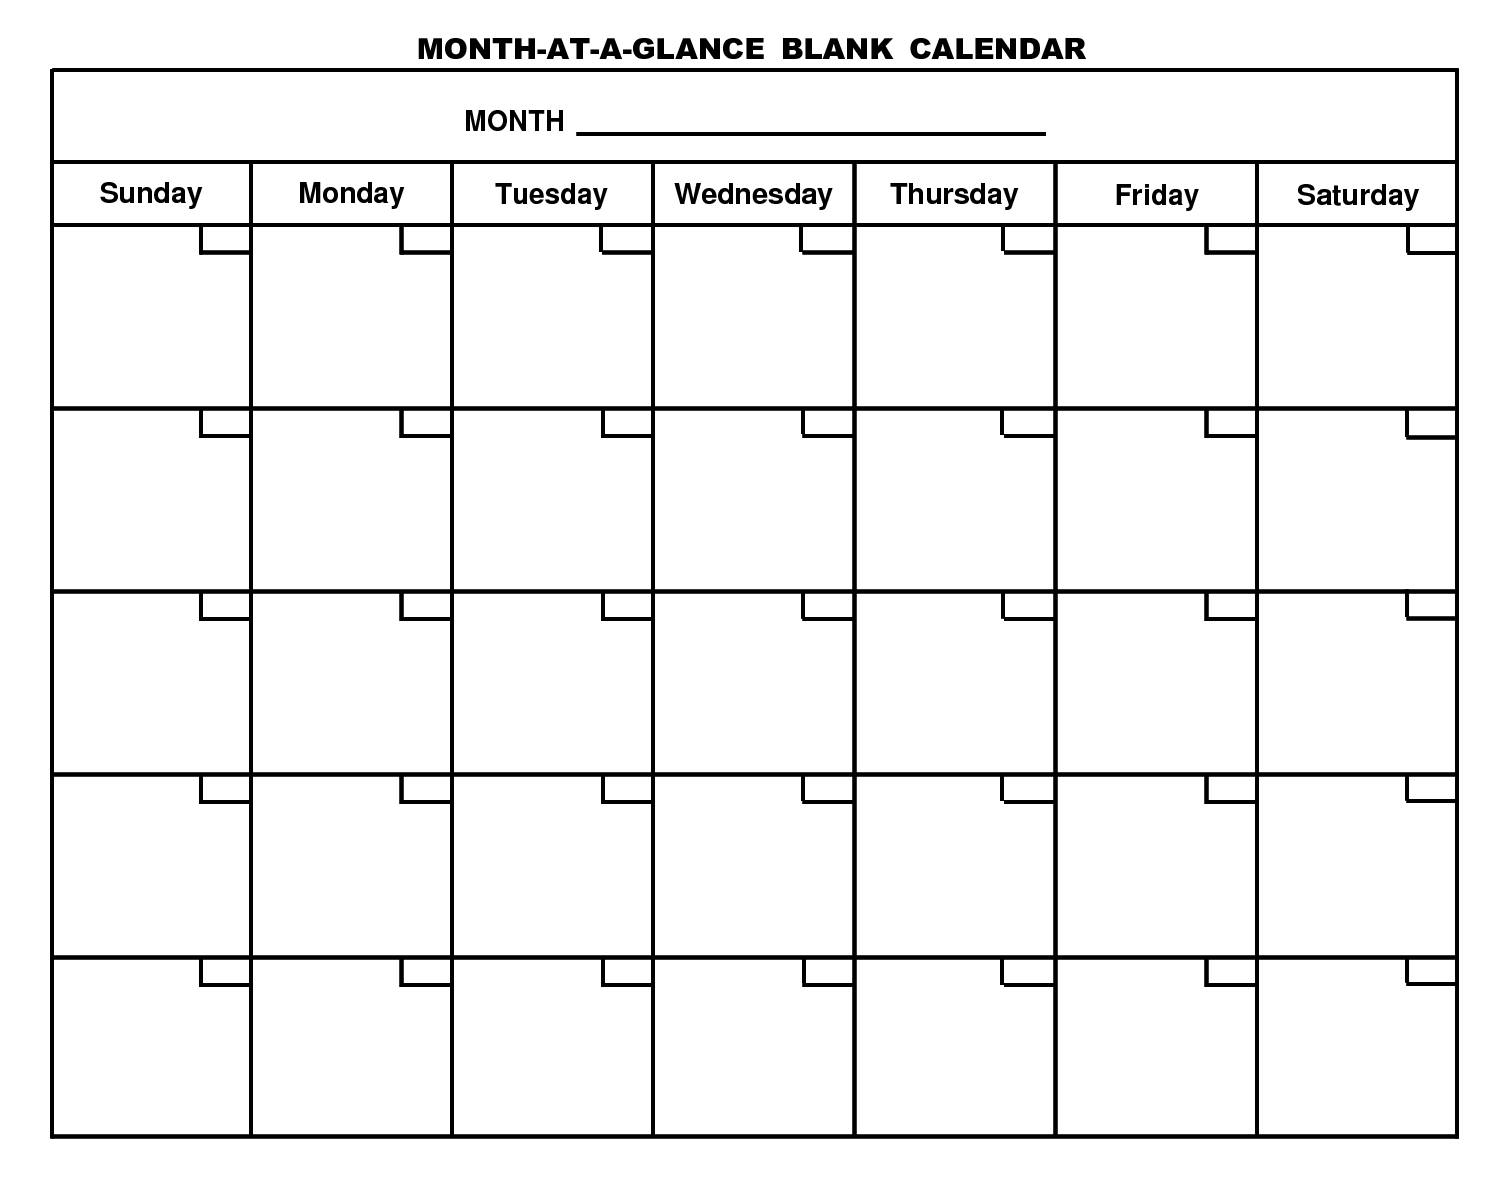 Pin By Stacy Tangren On Work | Blank Monthly Calendar-Month At A Glance Blank Calendar Printable